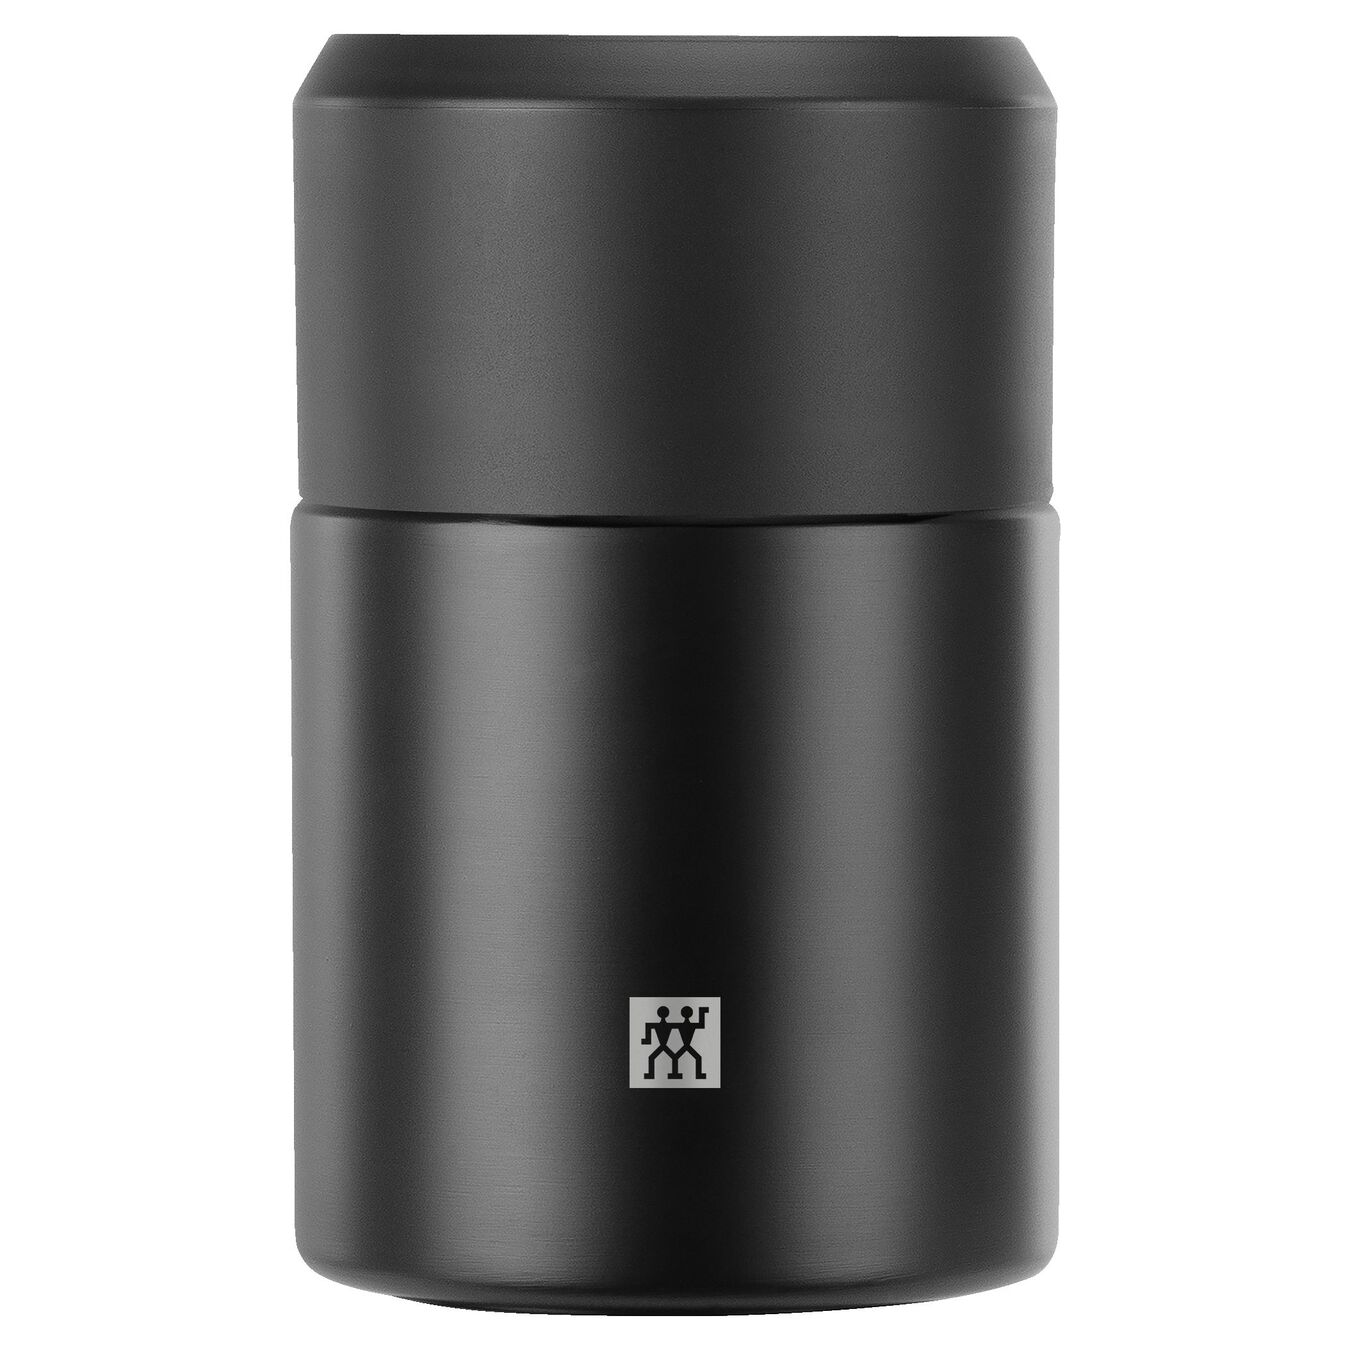 Contenant alimentaire isotherme, Black | Stainless steel | 700 ml,,large 1